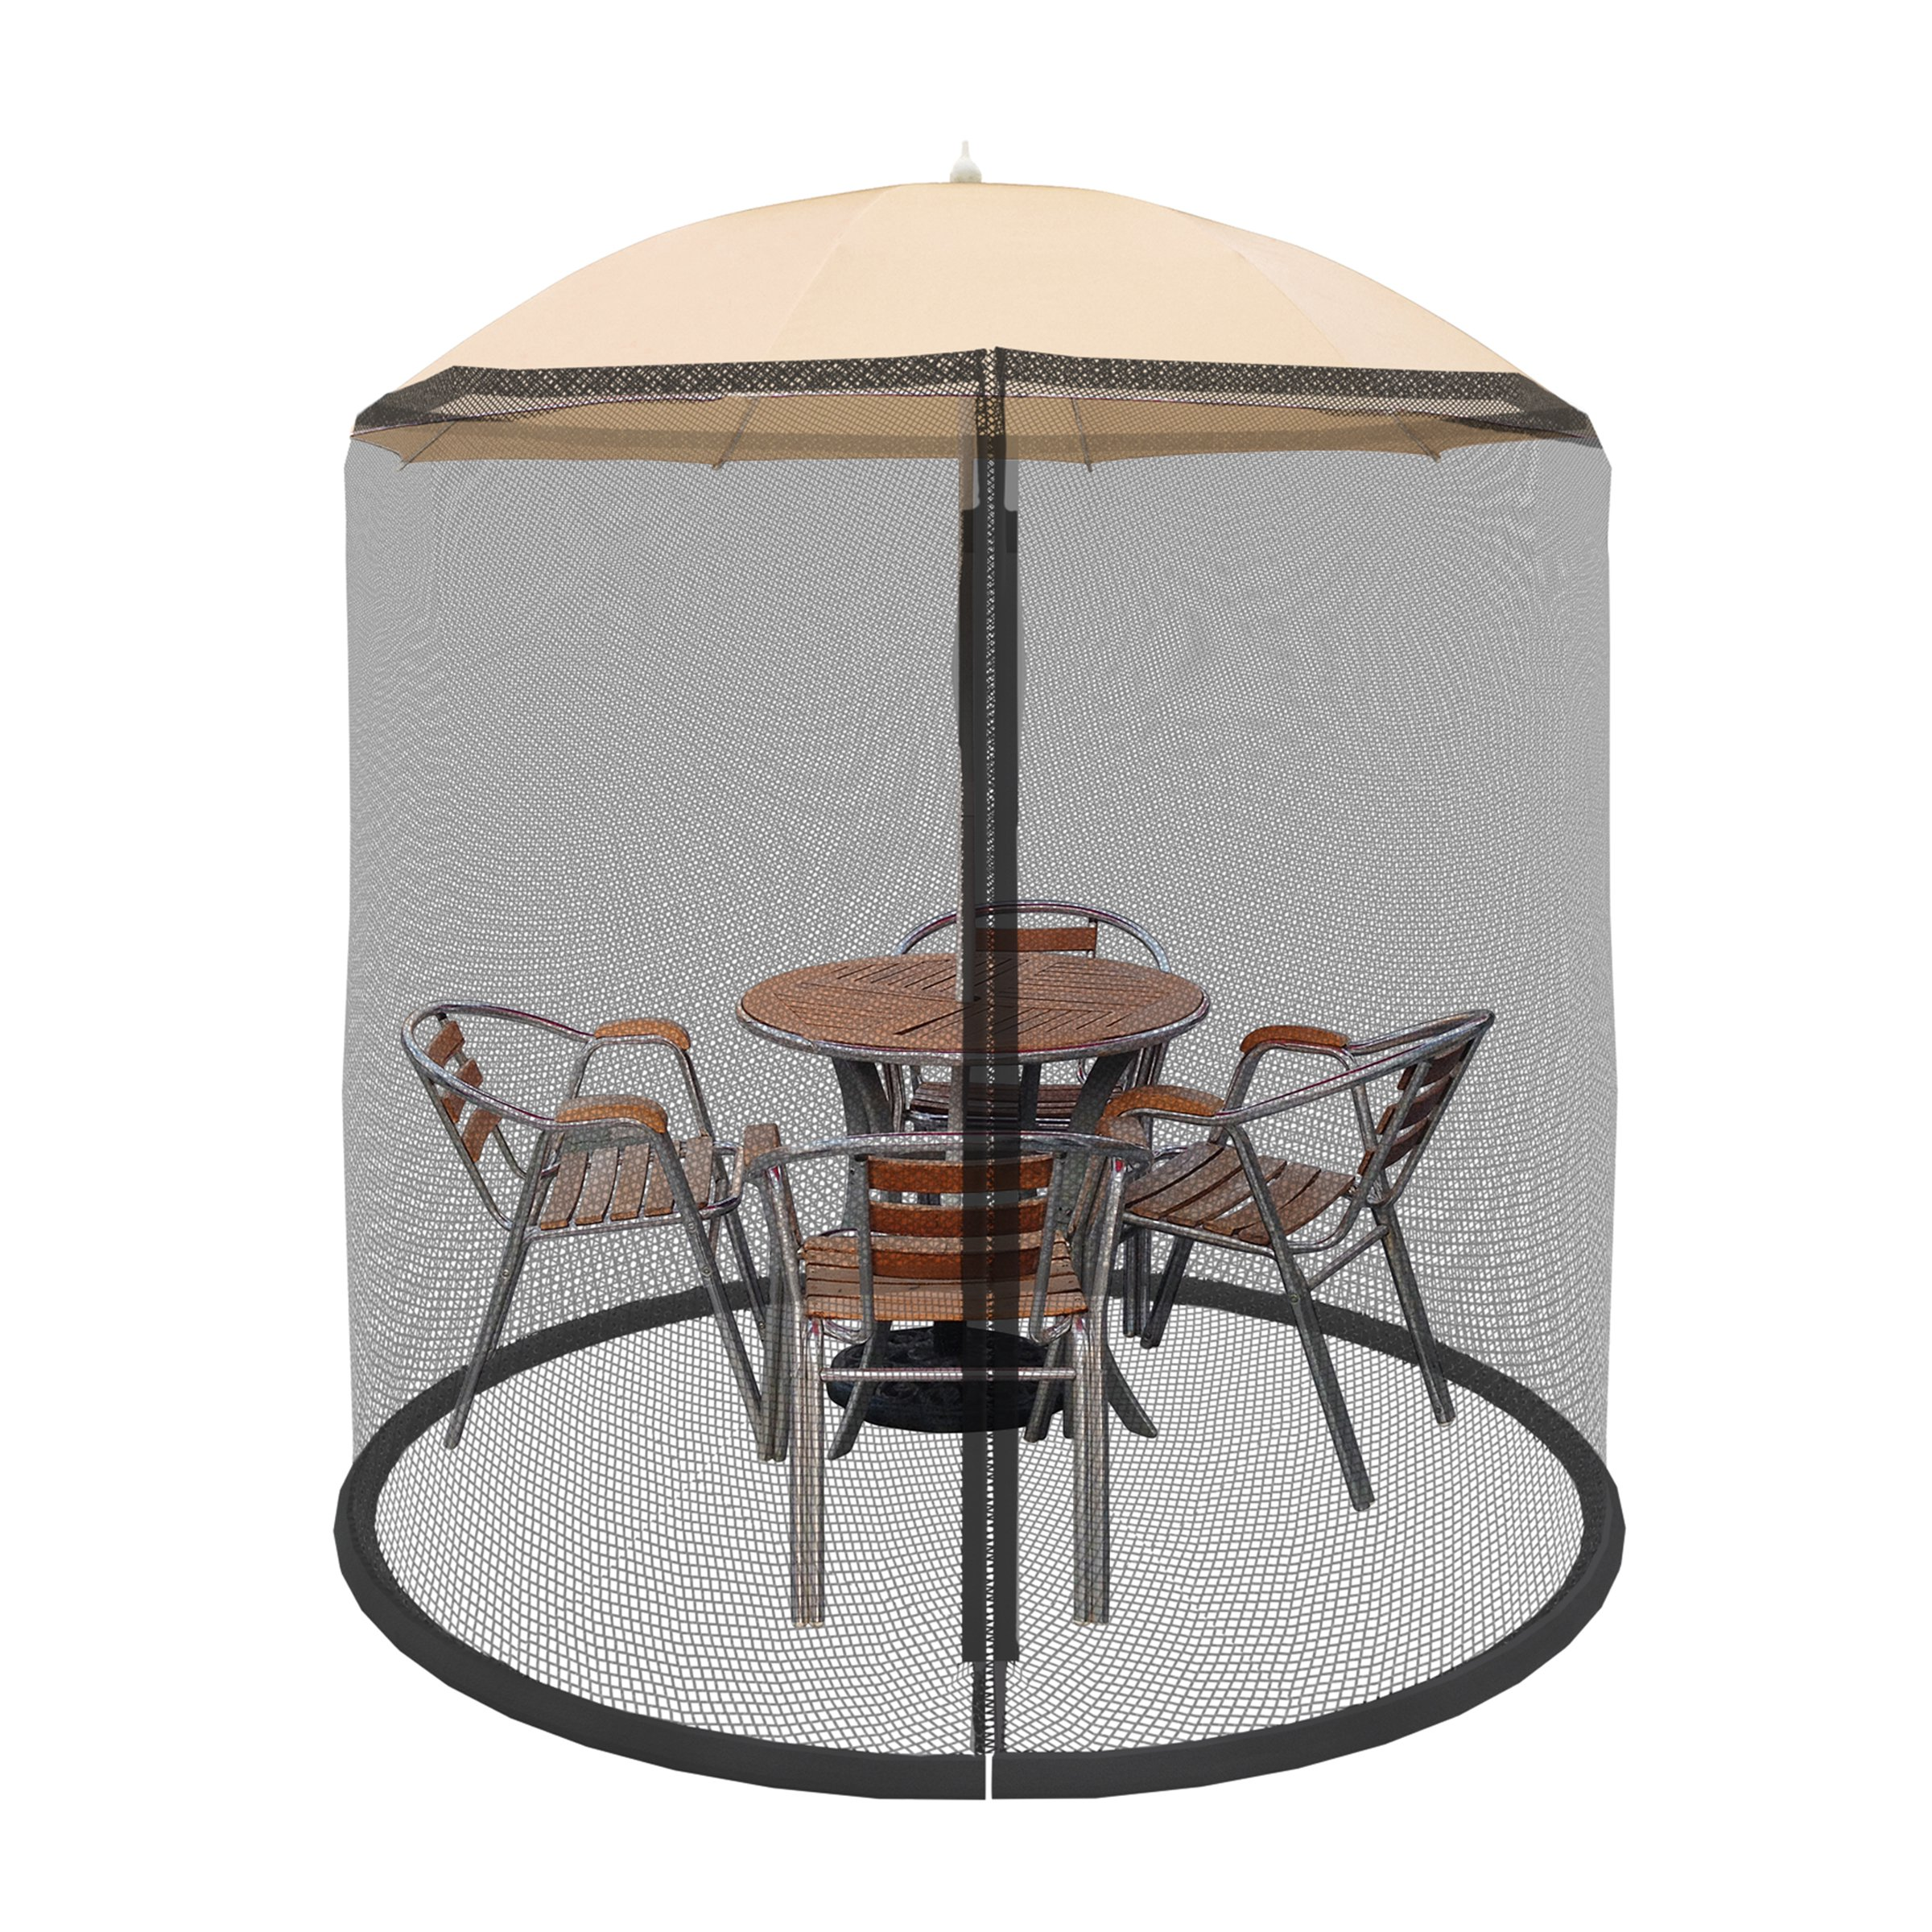 Patio Umbrella Cover Mosquito Netting Screen For Patio Table Umbrella,  Garden Deck Furniture  Zippered